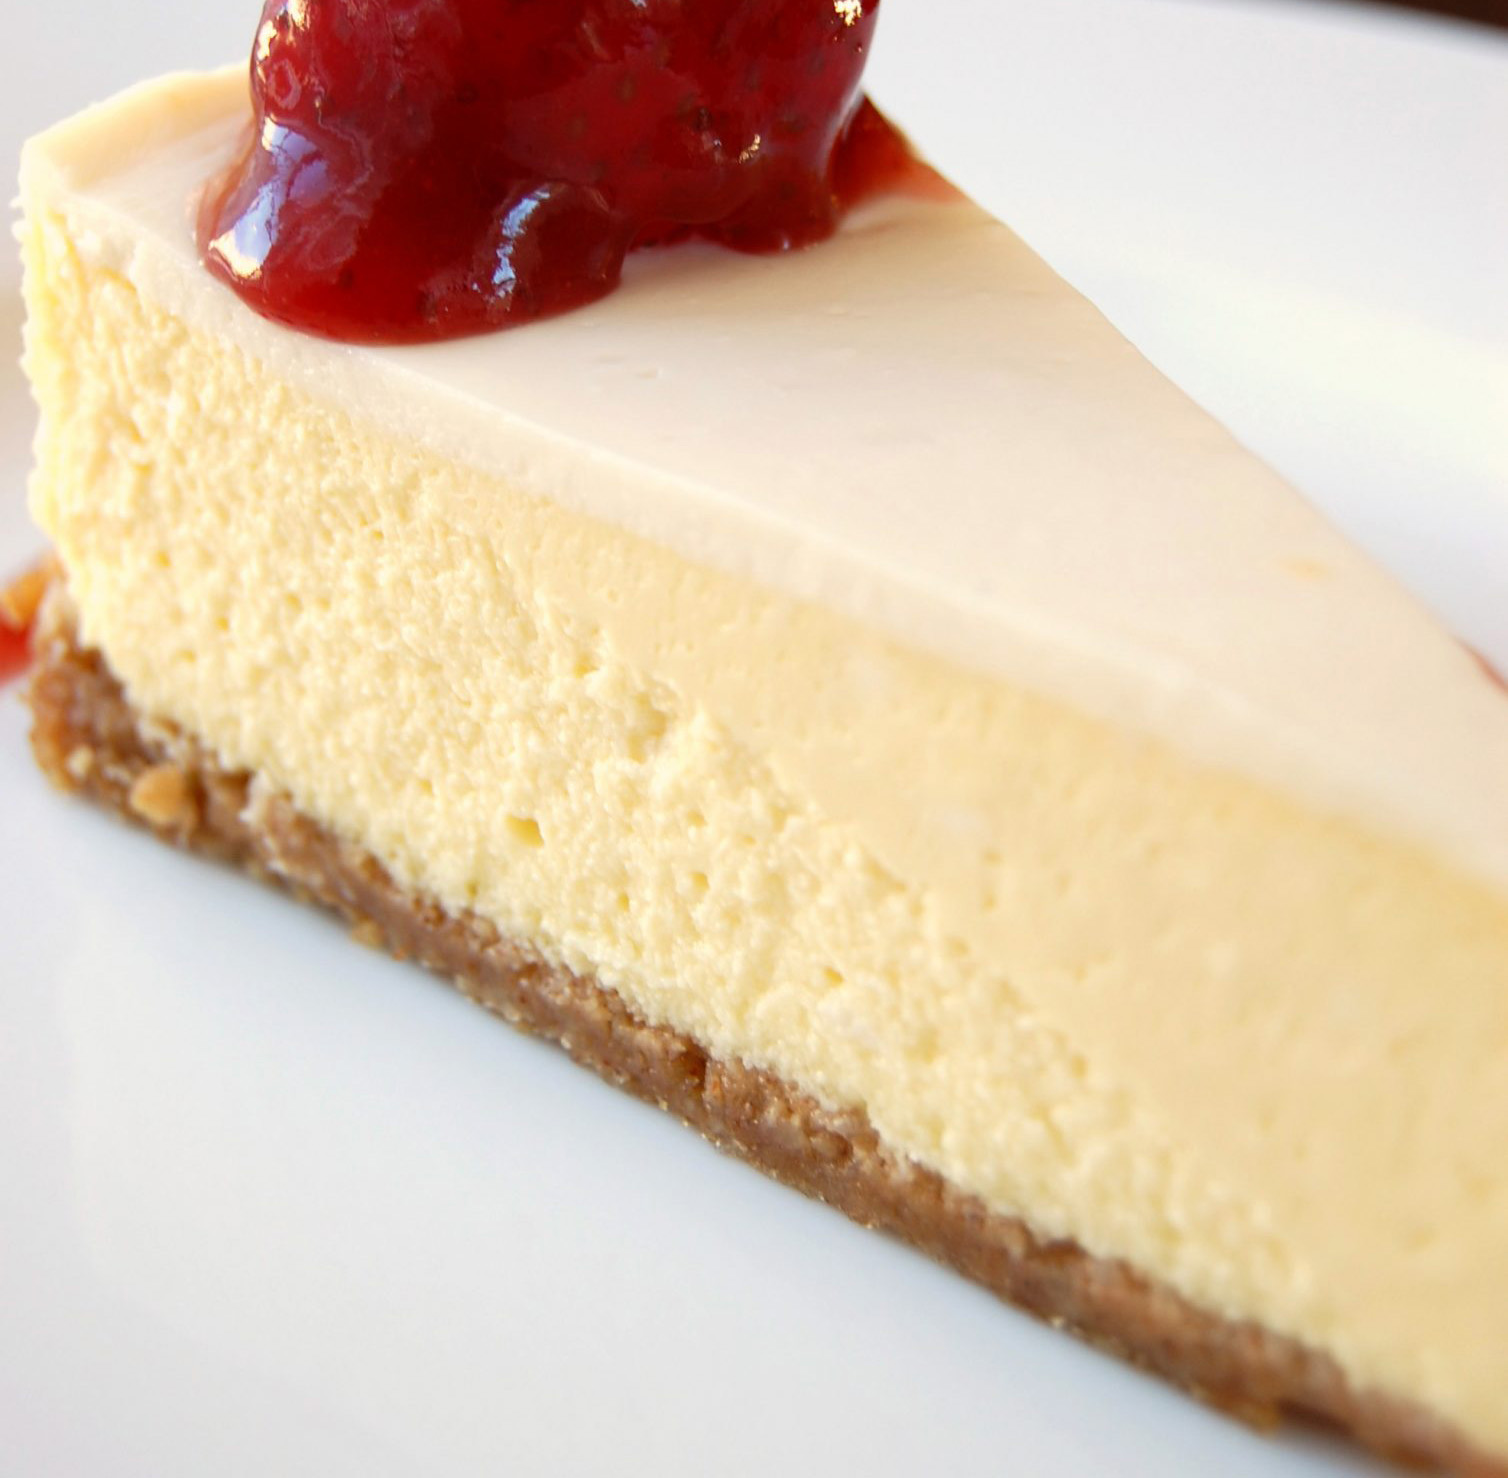 closeup of a slice of cheesecake with a thin sour cream layer and glazed strawberry on top